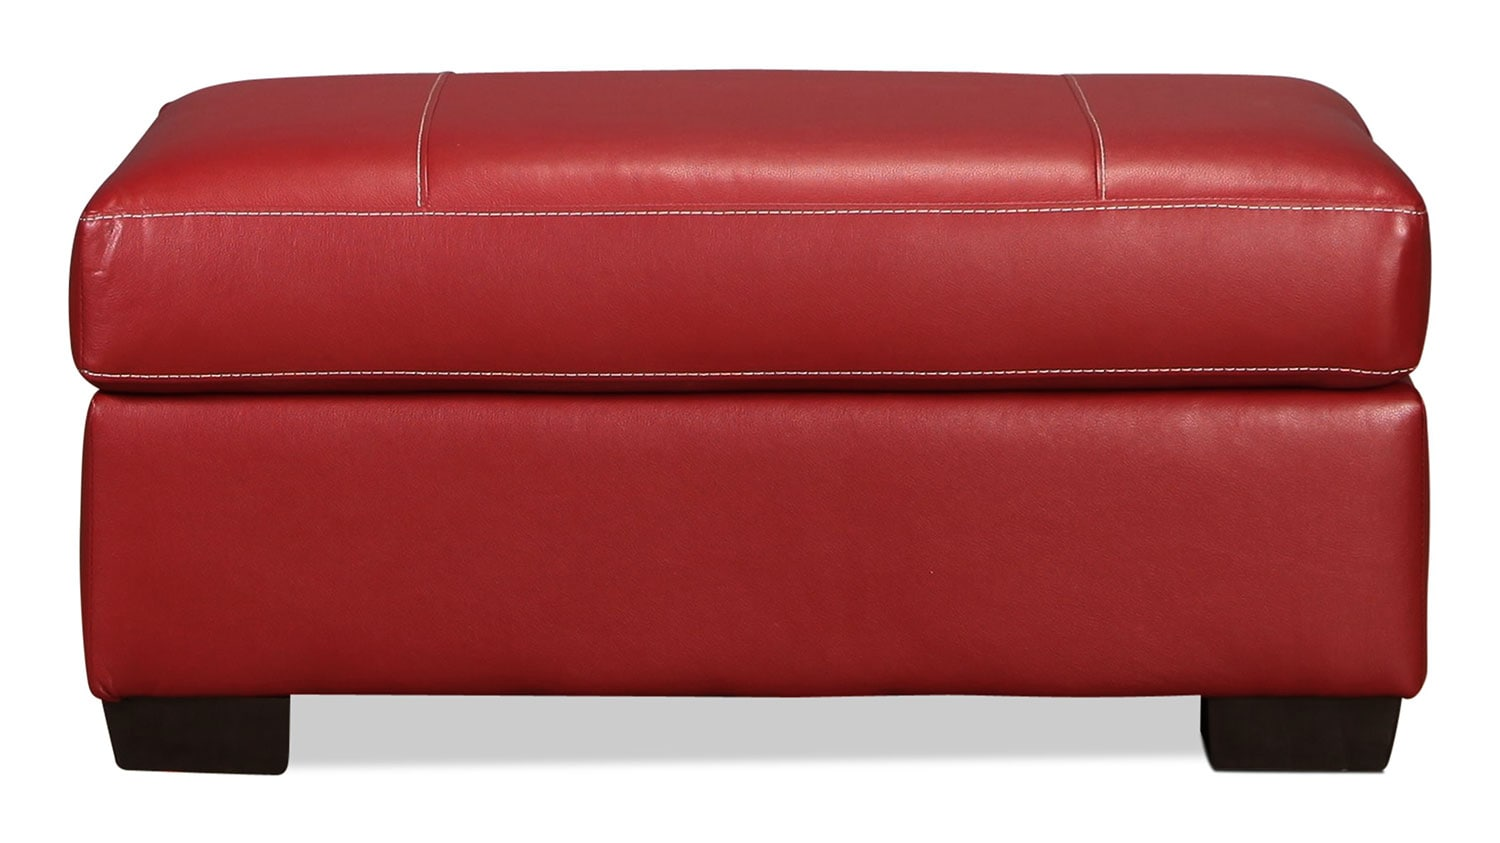 Rigley Ottoman - Red